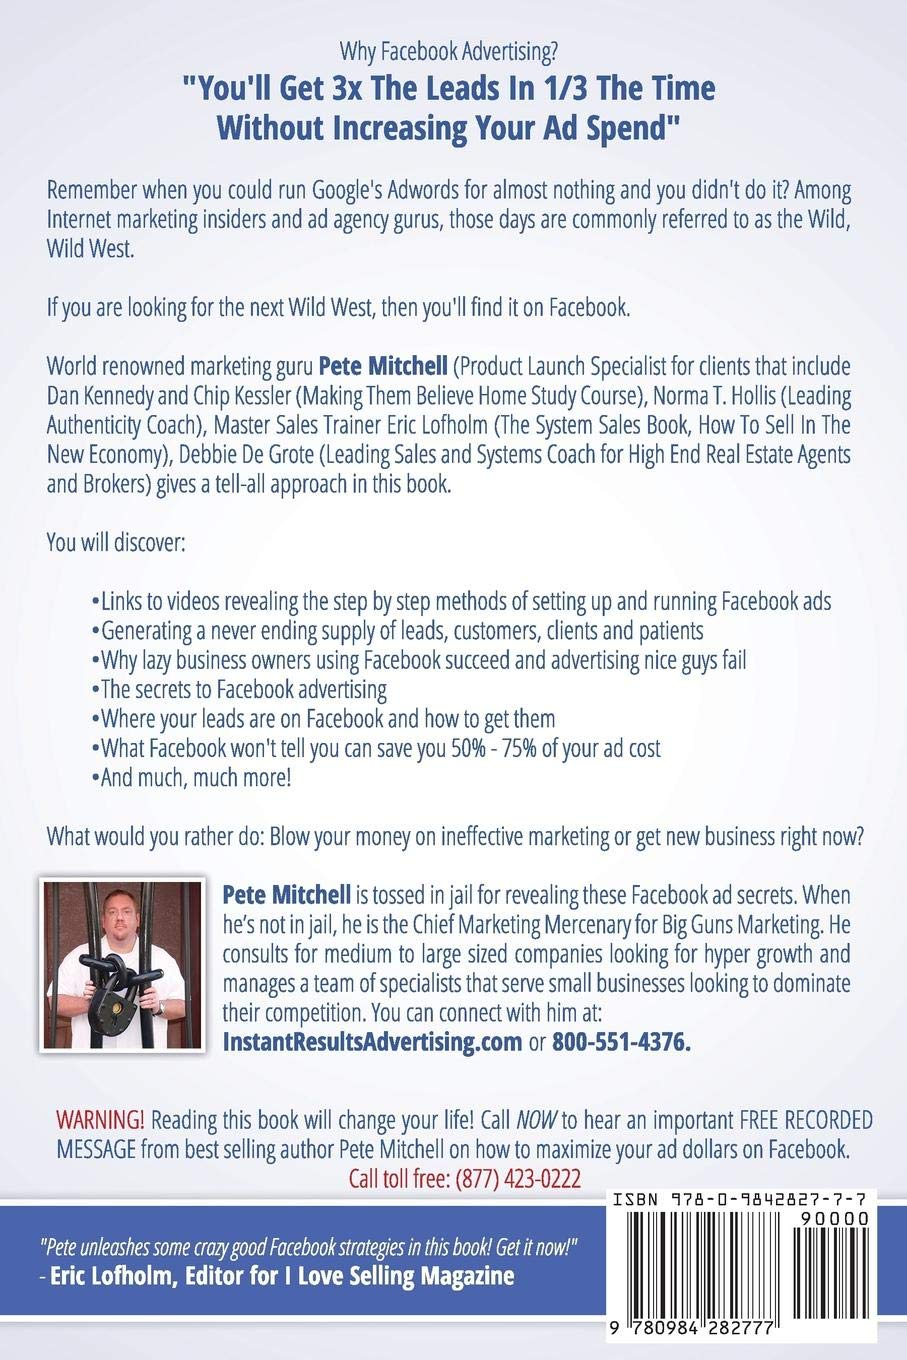 What Everyone Ought to Know about Facebook Advertising: How